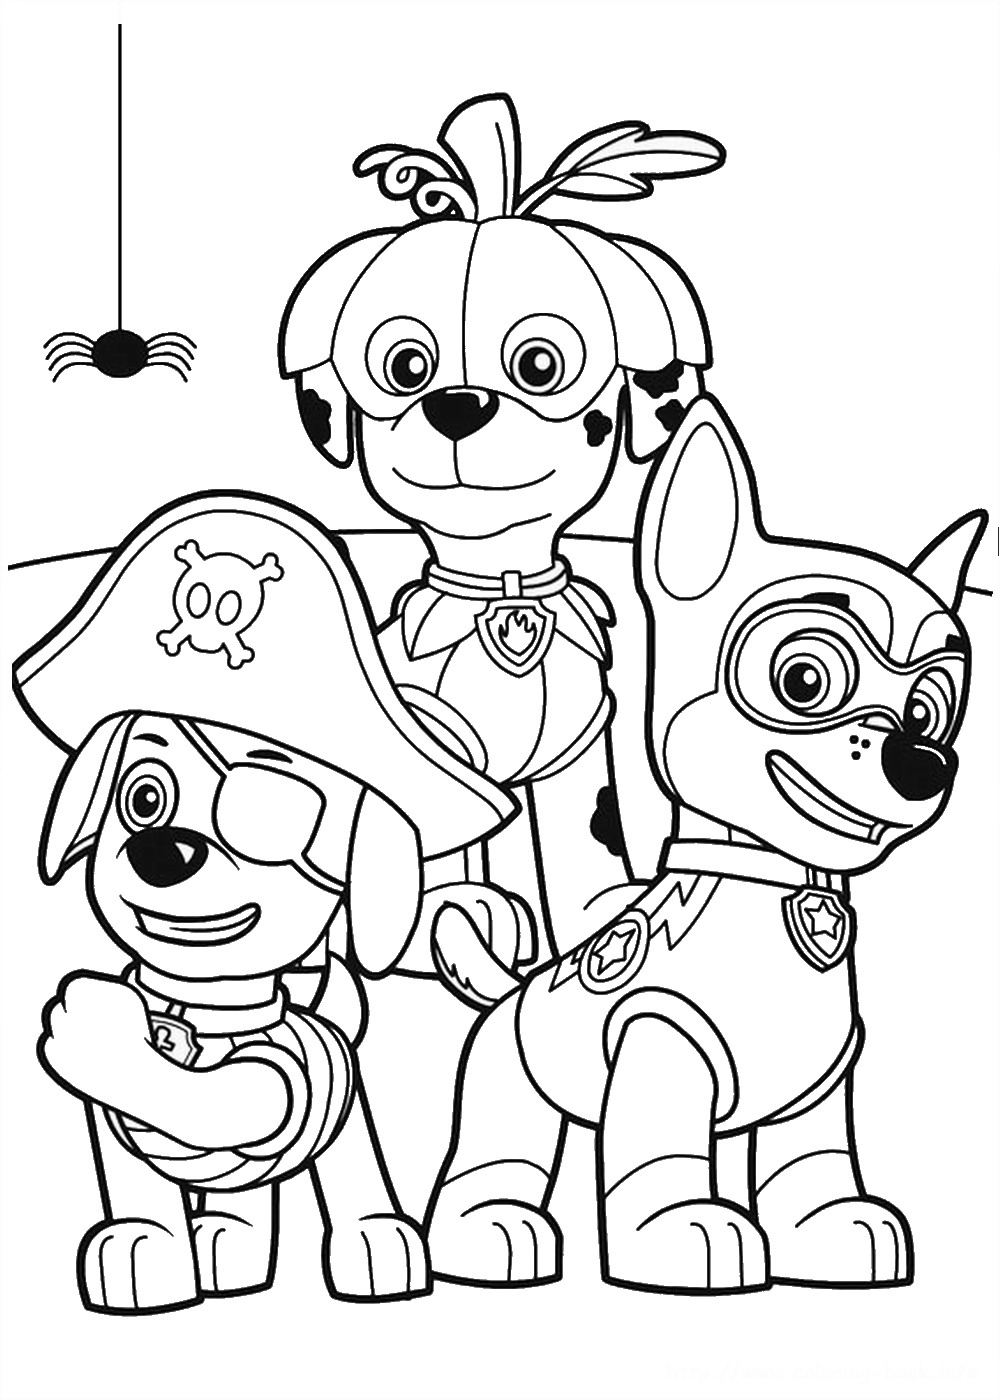 print paw patrol coloring pages paw patrol coloring pages printable 25 print color craft coloring paw patrol pages print